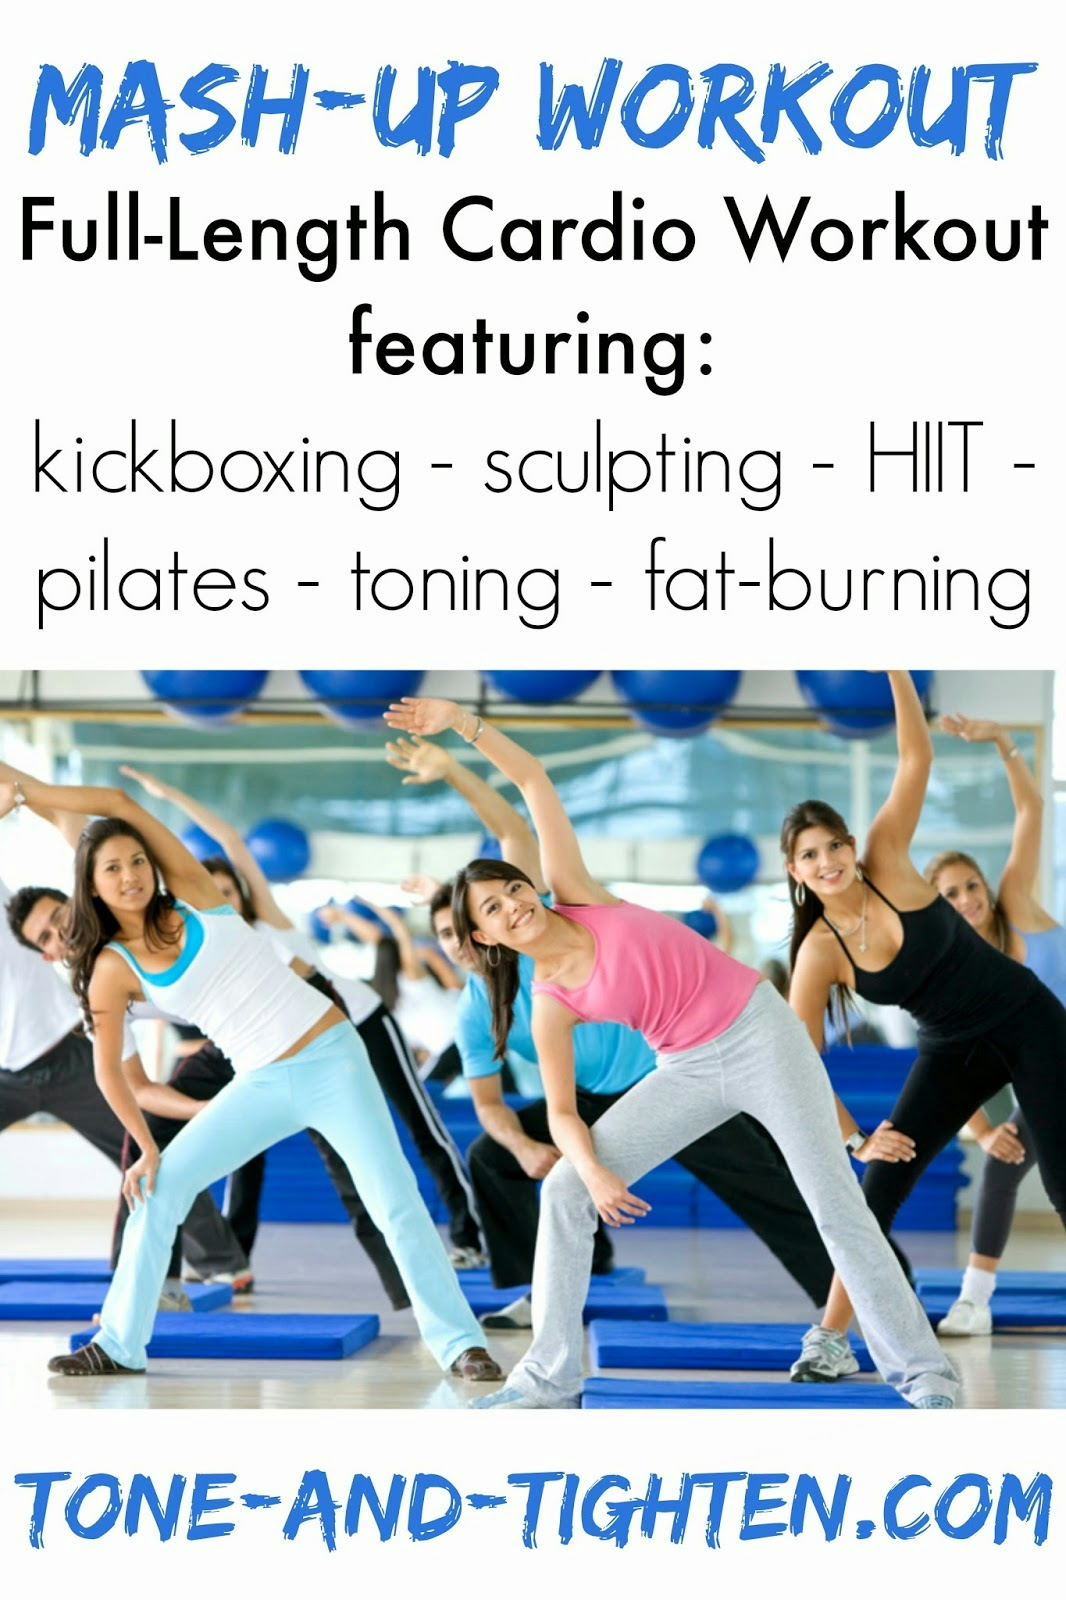 https://tone-and-tighten.com/2014/03/60-minute-cardio-mash-up-workout-kickboxing-sculpting-hiit-and-toning-all-in-one-workout.html